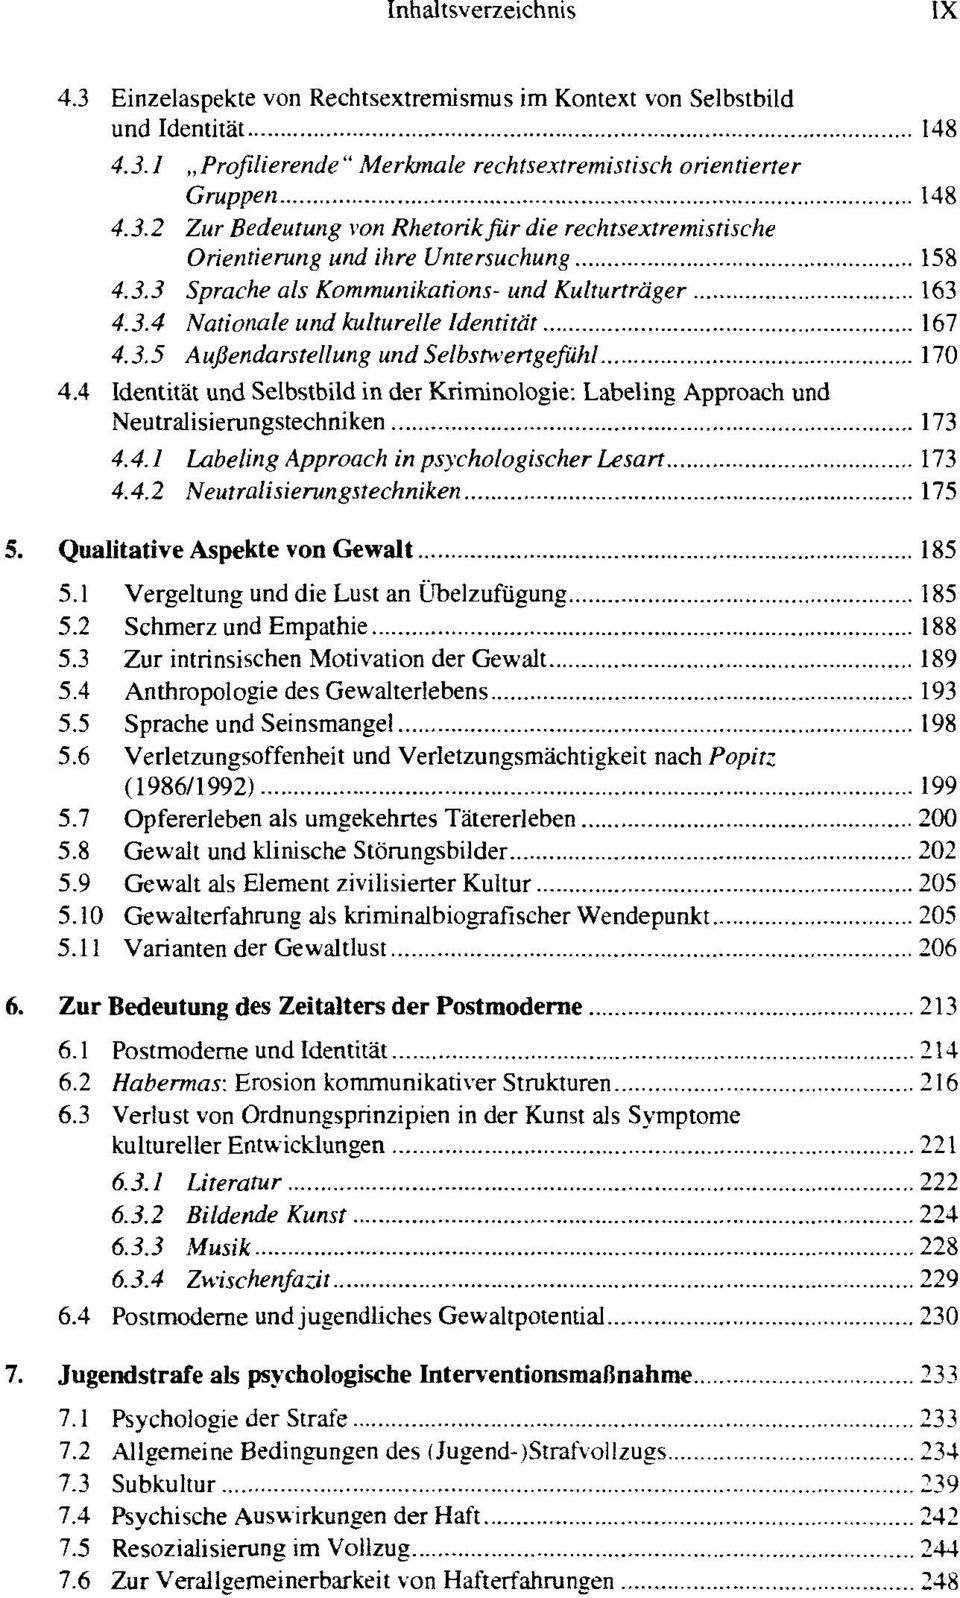 4 Identität und Selbstbild in der Kriminologie: Labeling Approach und Neutralisierungstechniken 173 4.4.1 Labeling Approach in psychologischer Lesart 173 4.4.2 Neutralisierungstechniken 175 5.